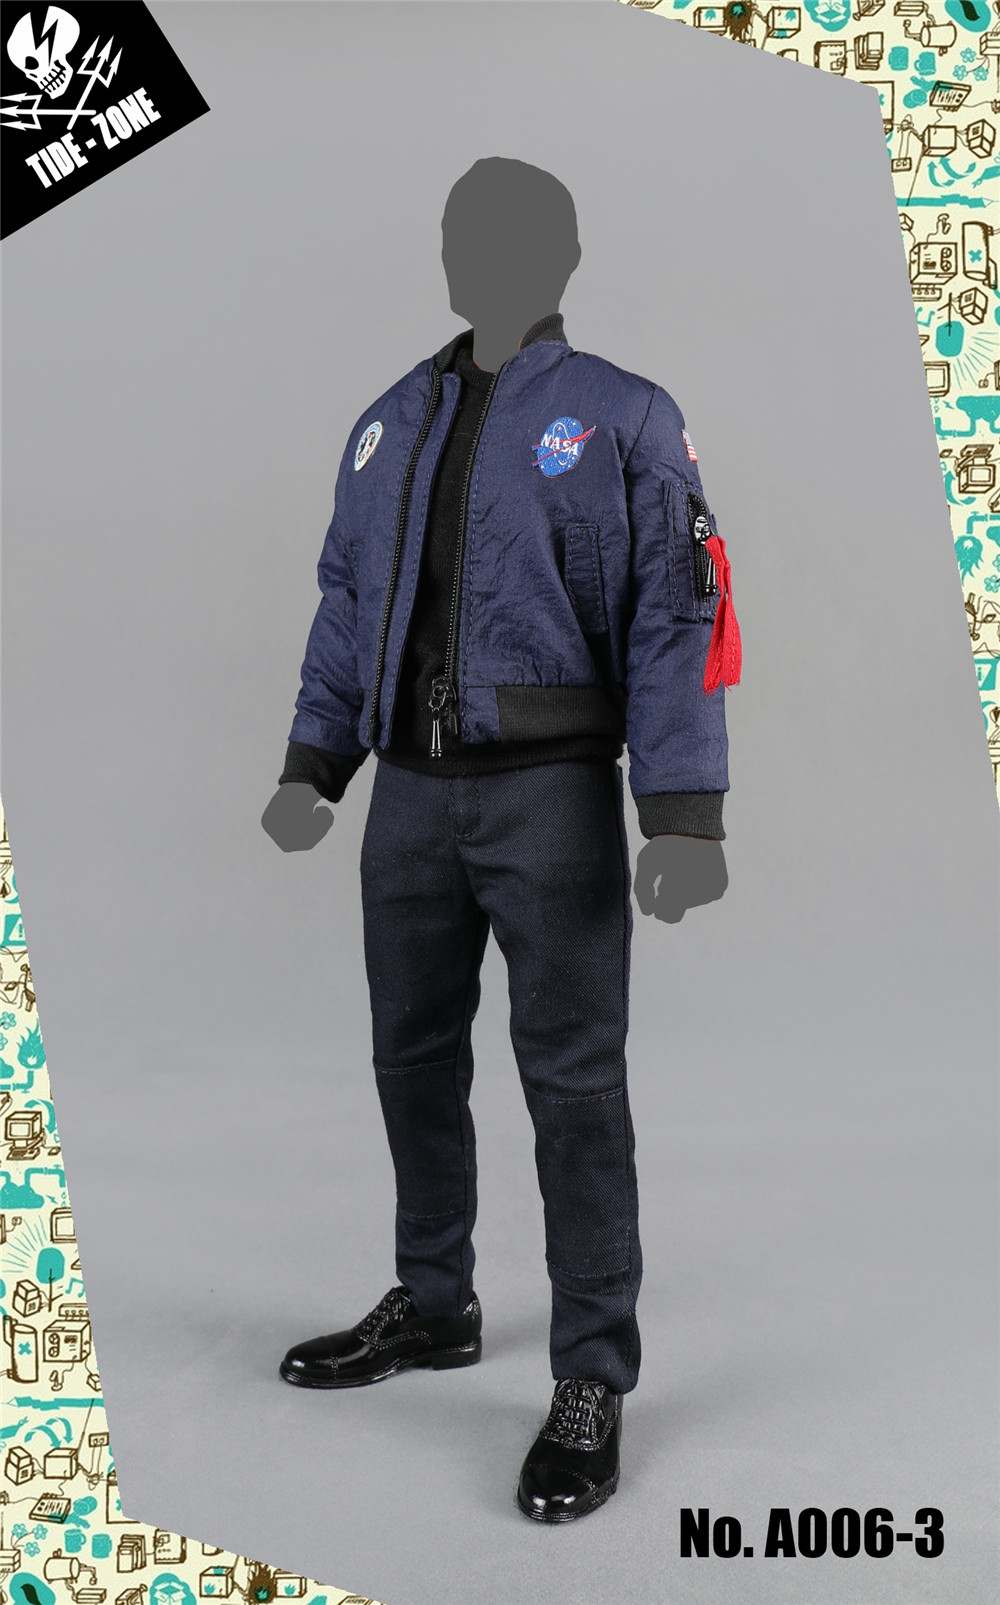 NEW PRODUCT: TIDE-ZONE: 1/6 scale Men's Clothing Sets (Various) 12300910